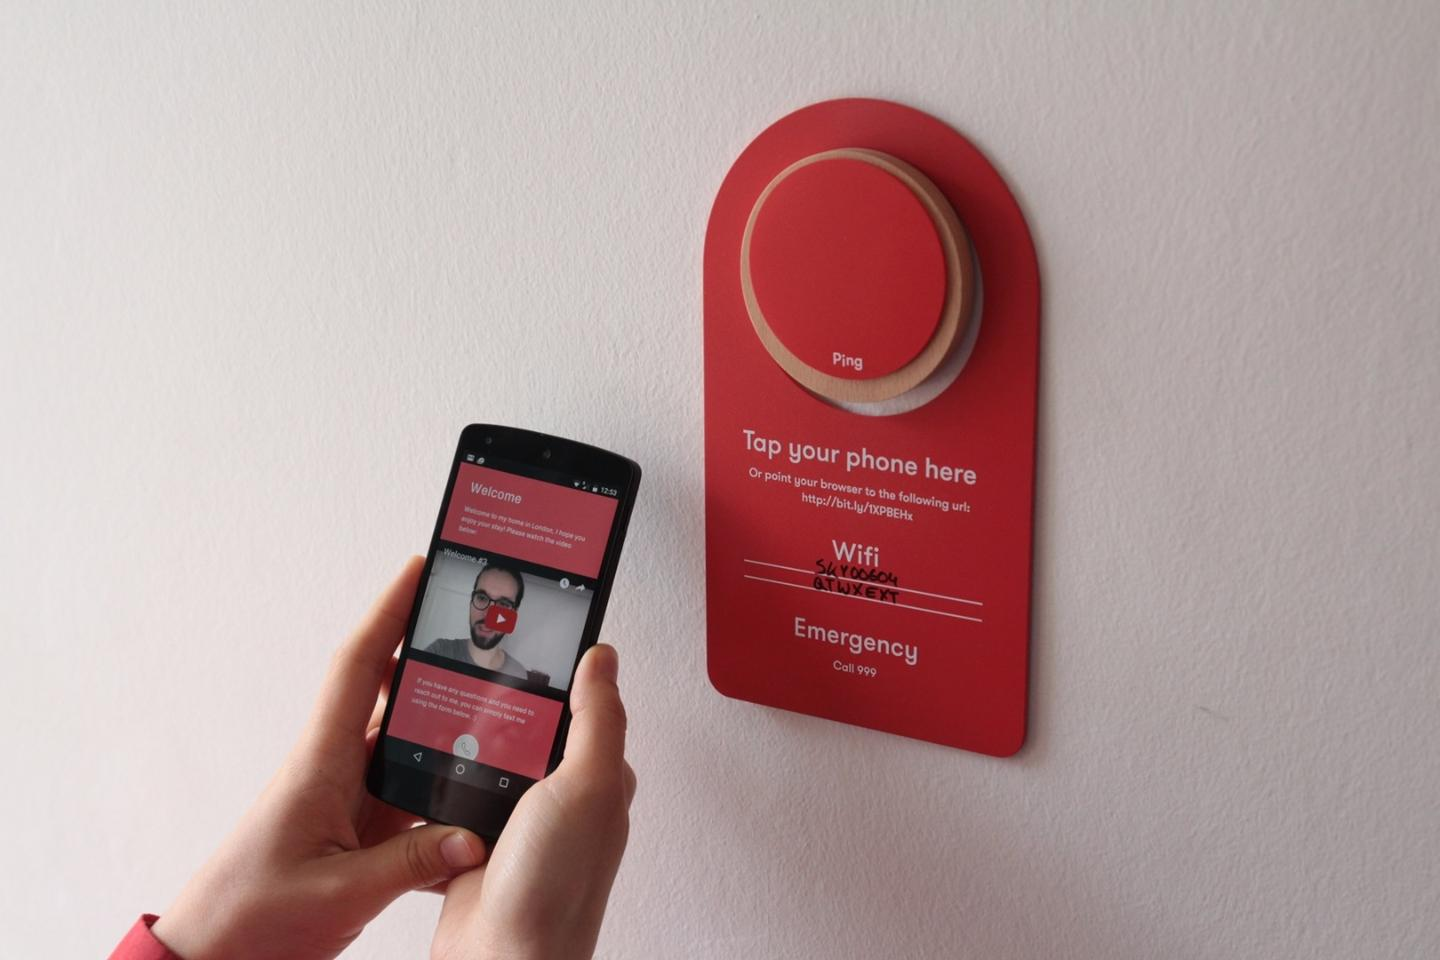 The Pings can be scanned using a smartphone's NFC or a URLcan be entered into the smartphone's browser